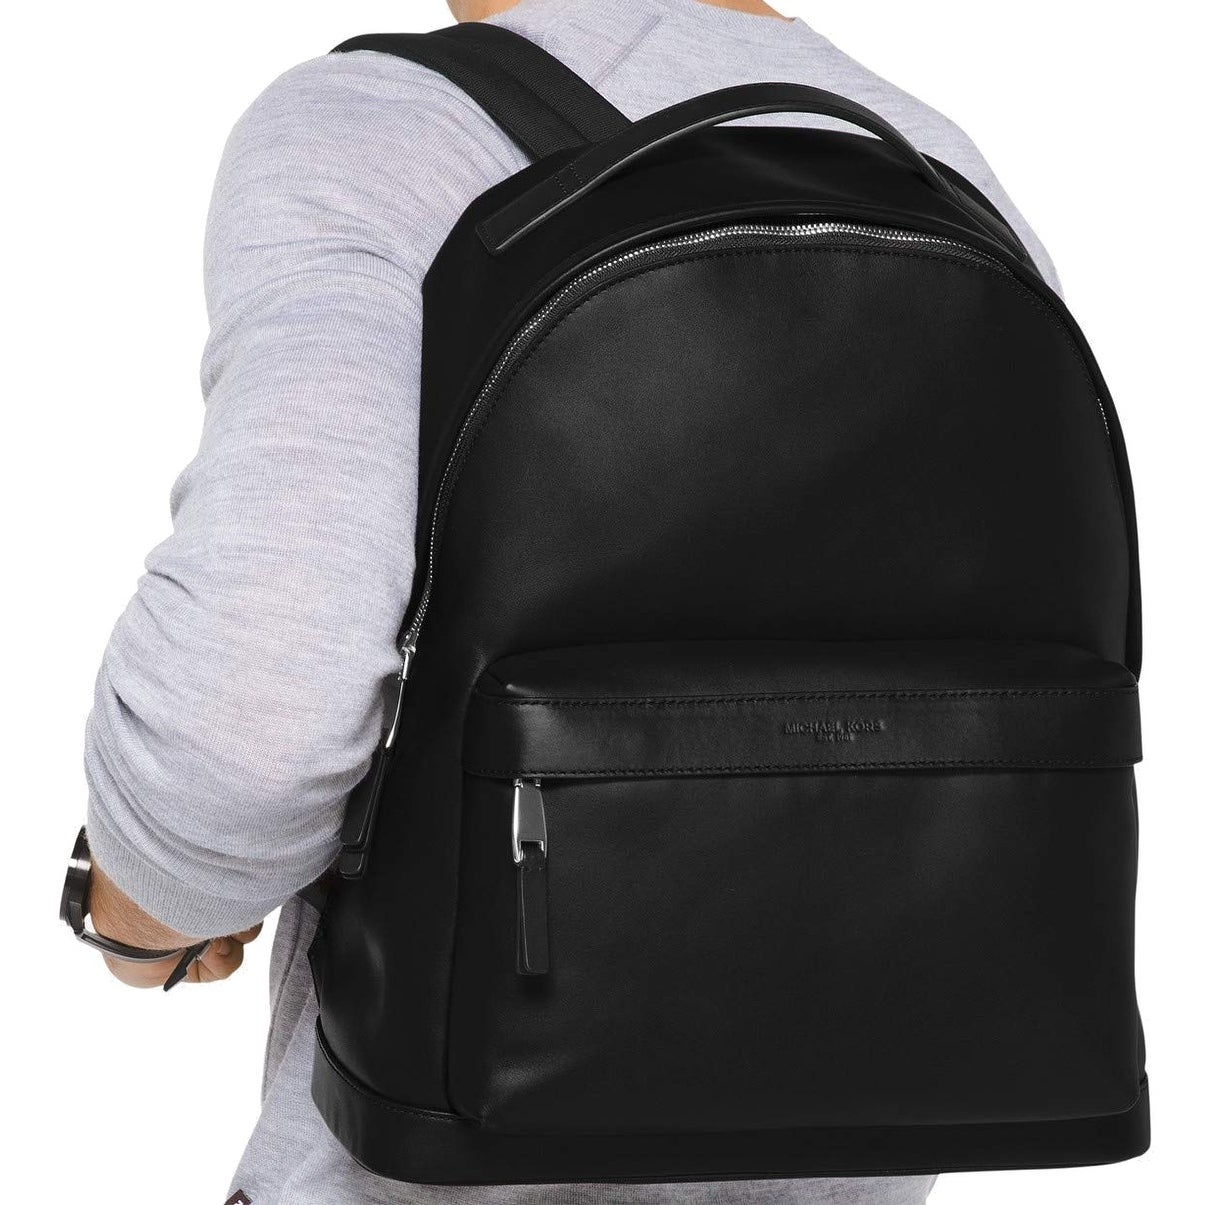 59de27e909abd5 Shop Michael Kors Black Solid Zip Odin Backpack Classic Leather Back - Free  Shipping Today - Overstock - 27997446